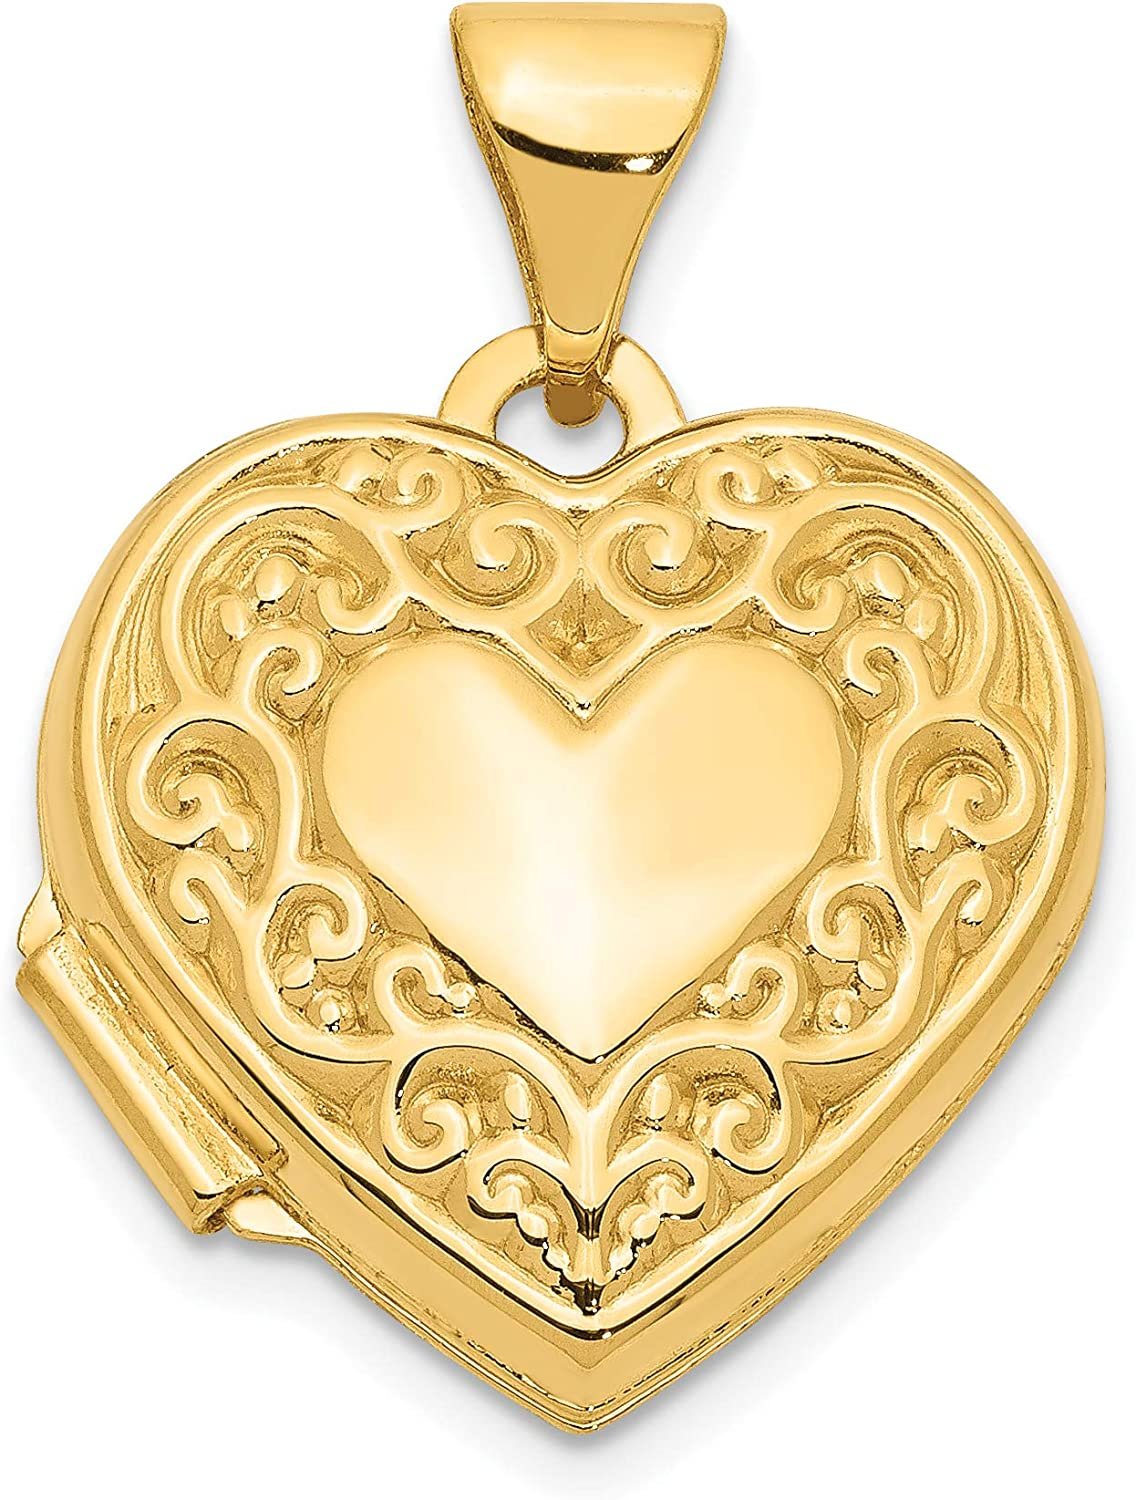 14k Yellow Max 83% OFF Gold Scroll Heart Locket 21x15mm Challenge the lowest price